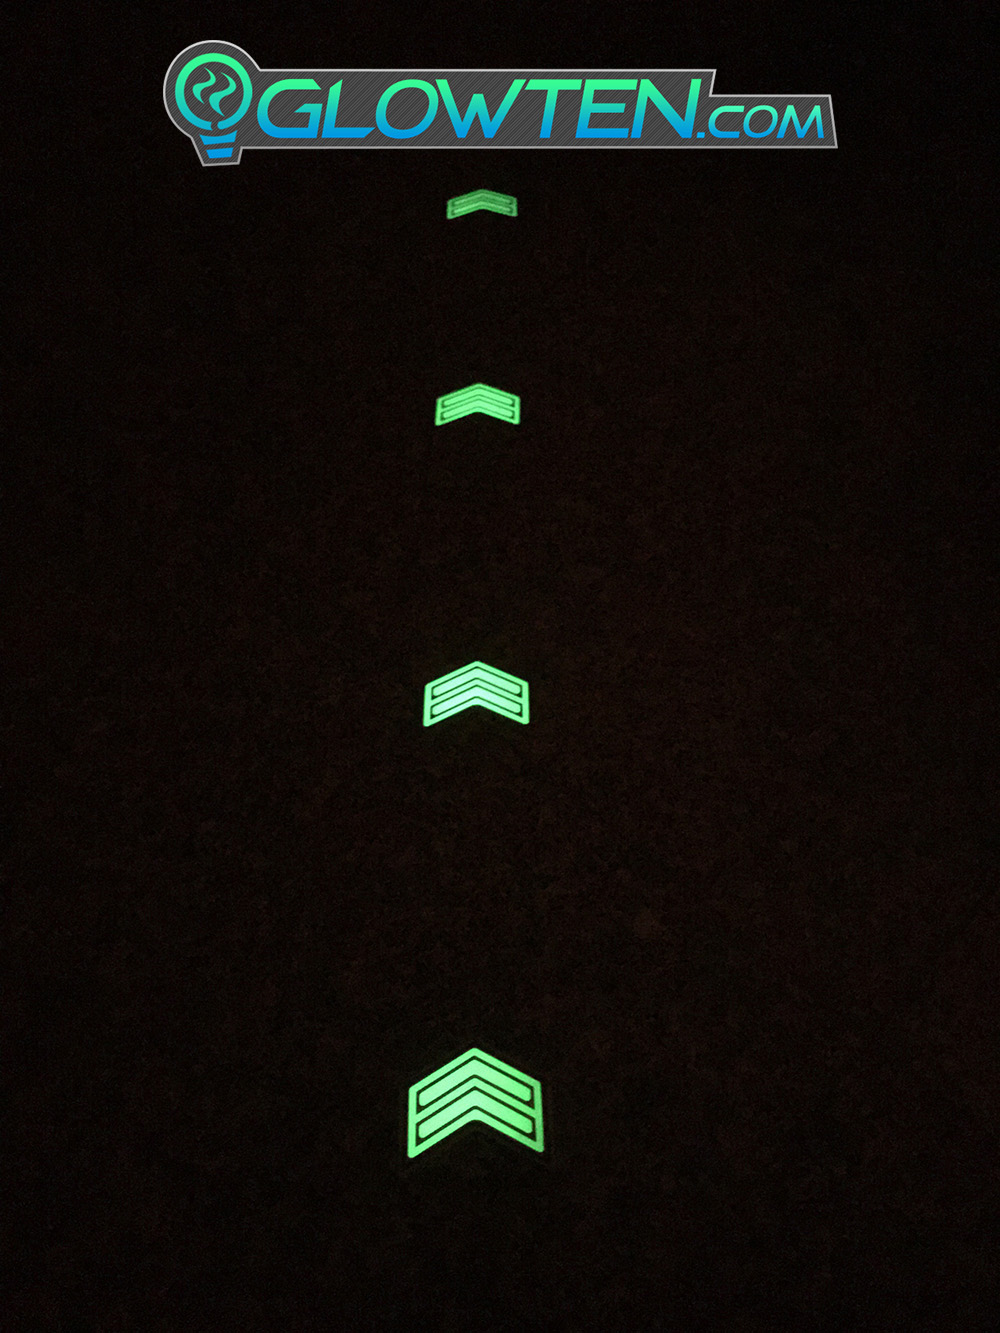 GLOWTEN.com - DOUBLE ARROWS Glow in the Dark Stairs Guide Directional Safety See Clearly At Night Metal Badge Sign prevent power outage picture photo cap preview pic 4